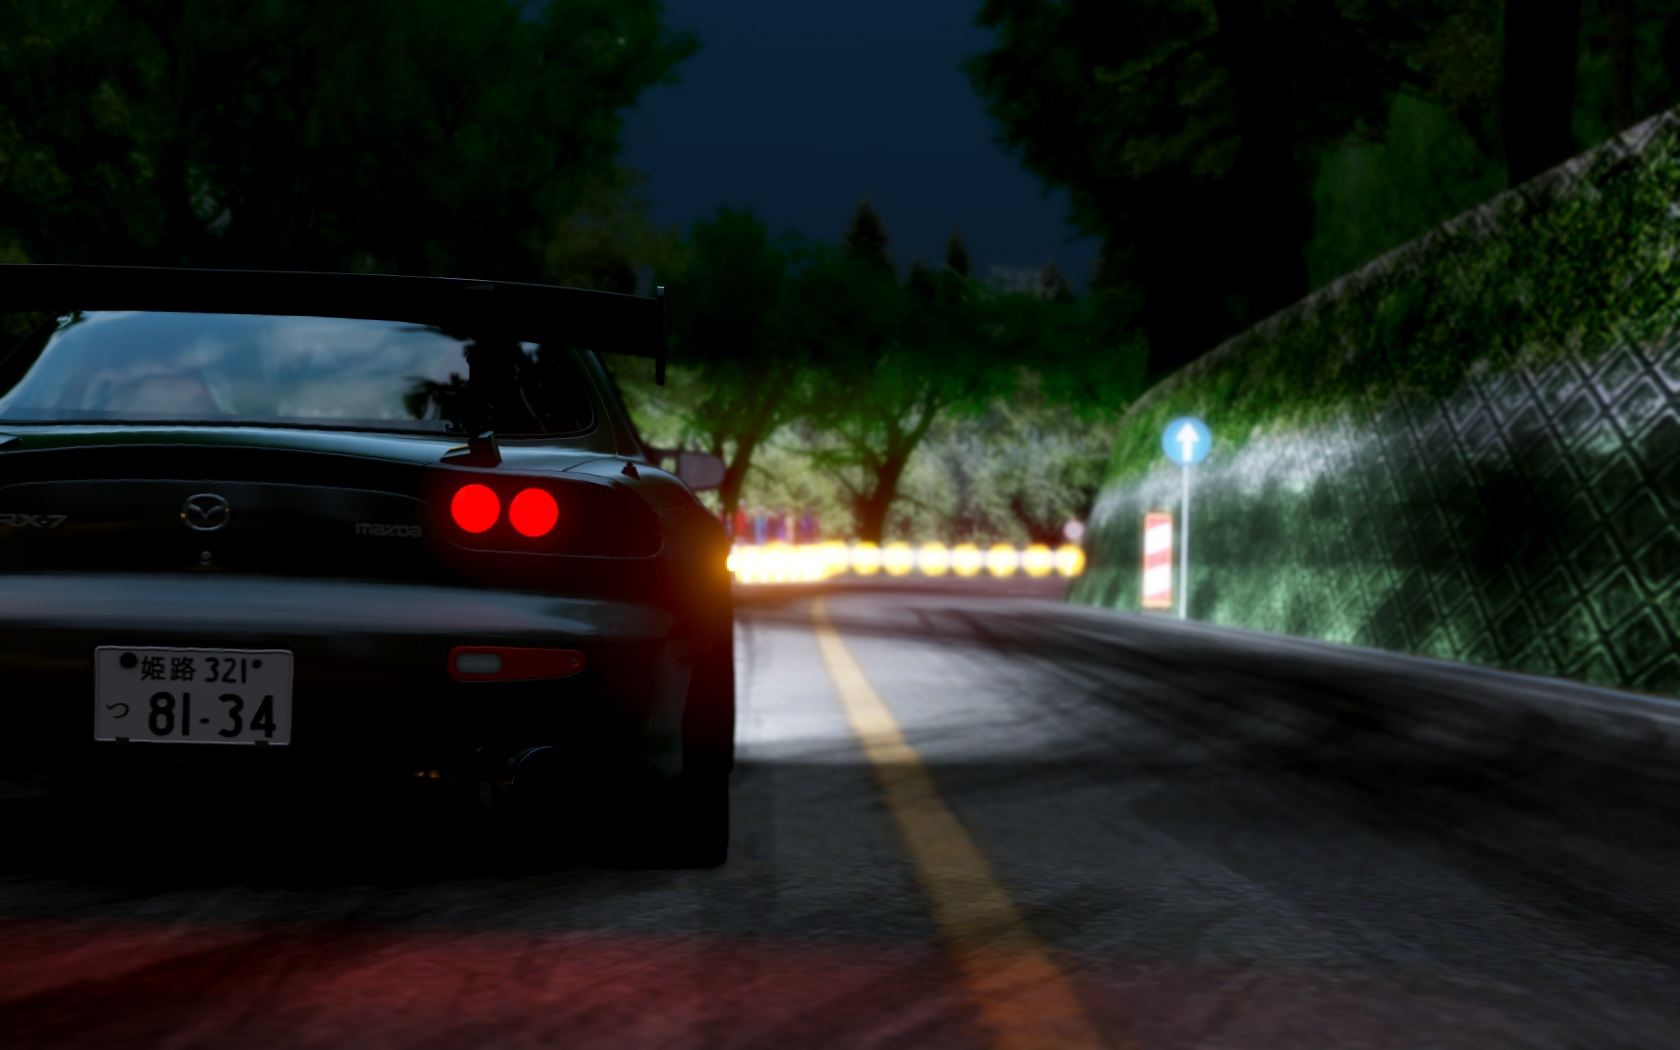 Screenshot_mazda_rx7_easy_final_spec_harugahara_touge_25-11-118-22-32-15.jpg